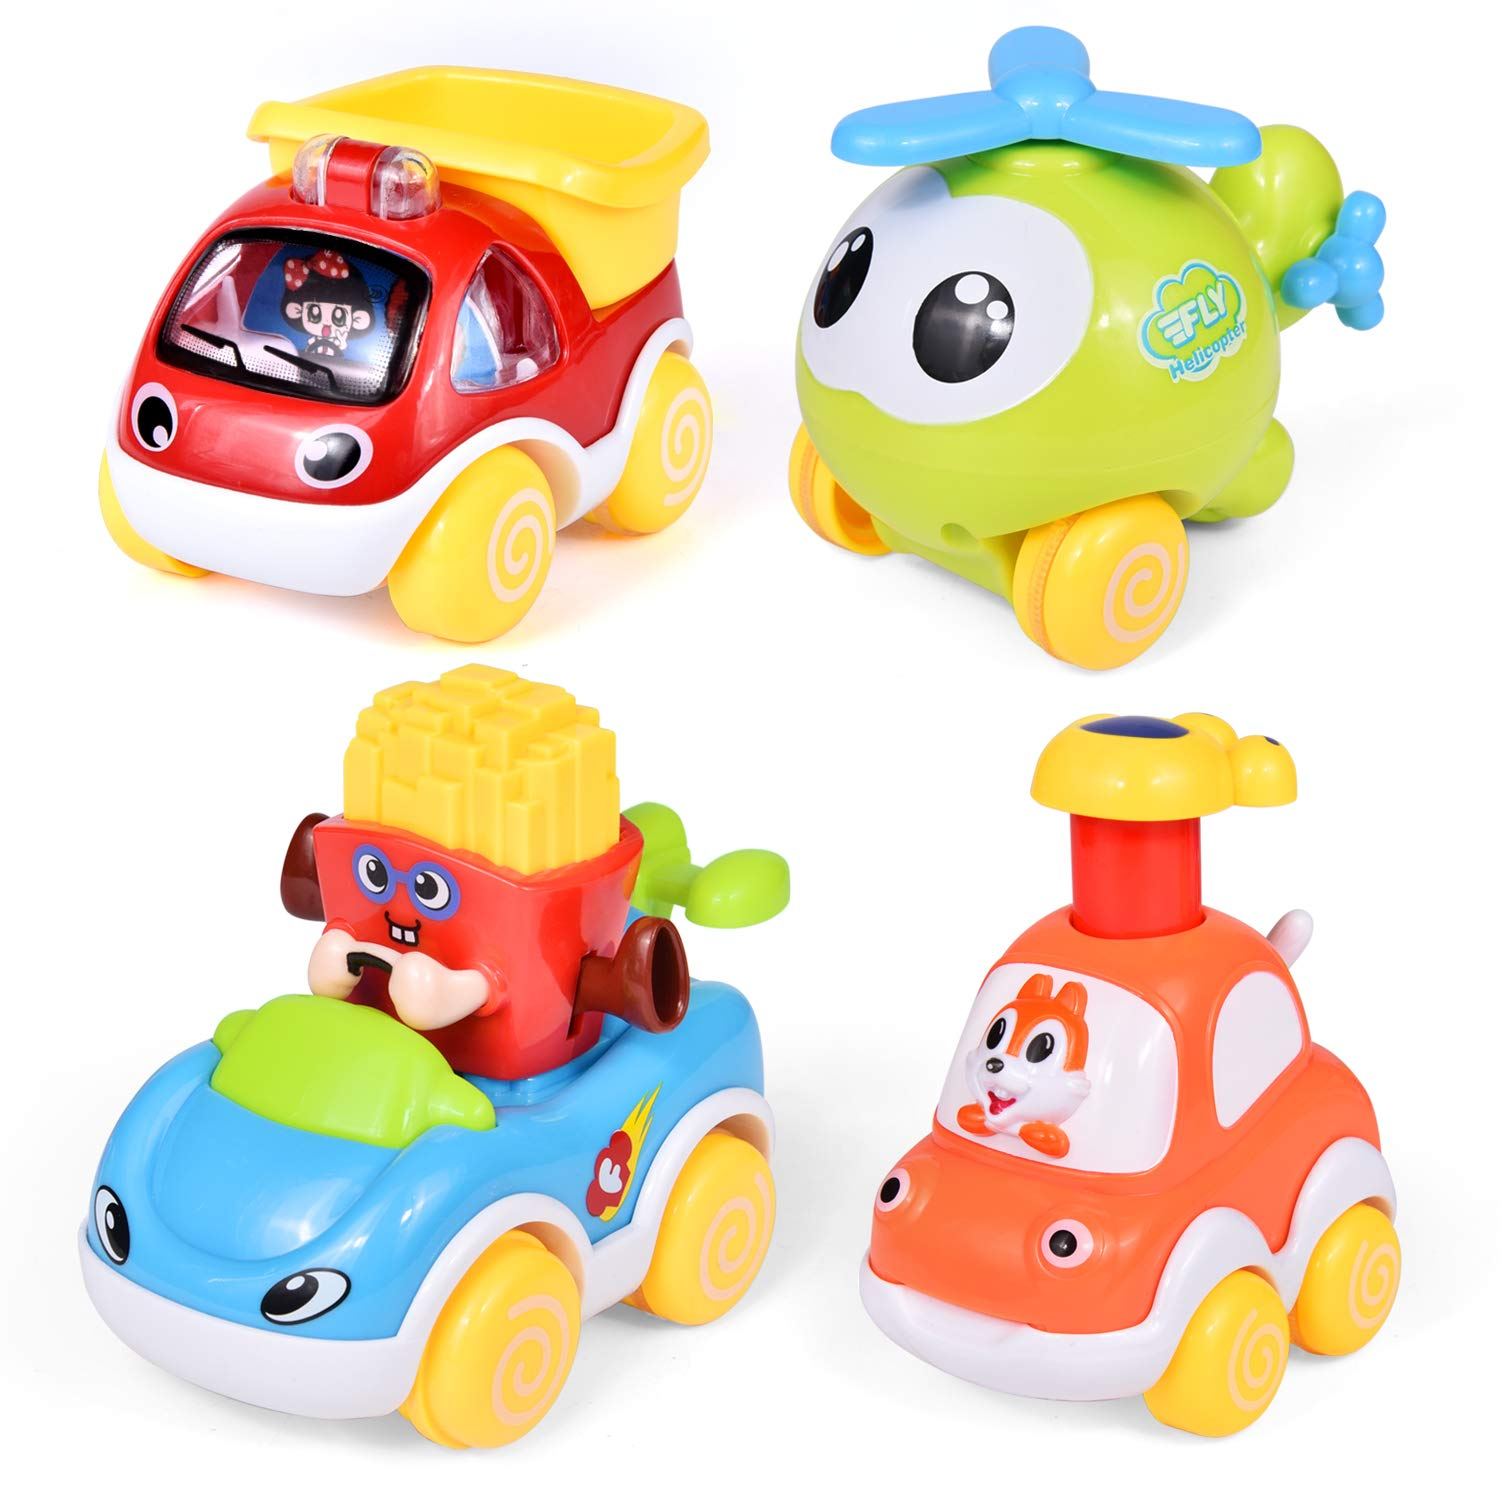 Car Toys for Kids, Pull Back Cars Push and Pull Cars for Babies, Toddler Toy Cars for Birthday Gifts Easter Basket Stuffers for Toddlers